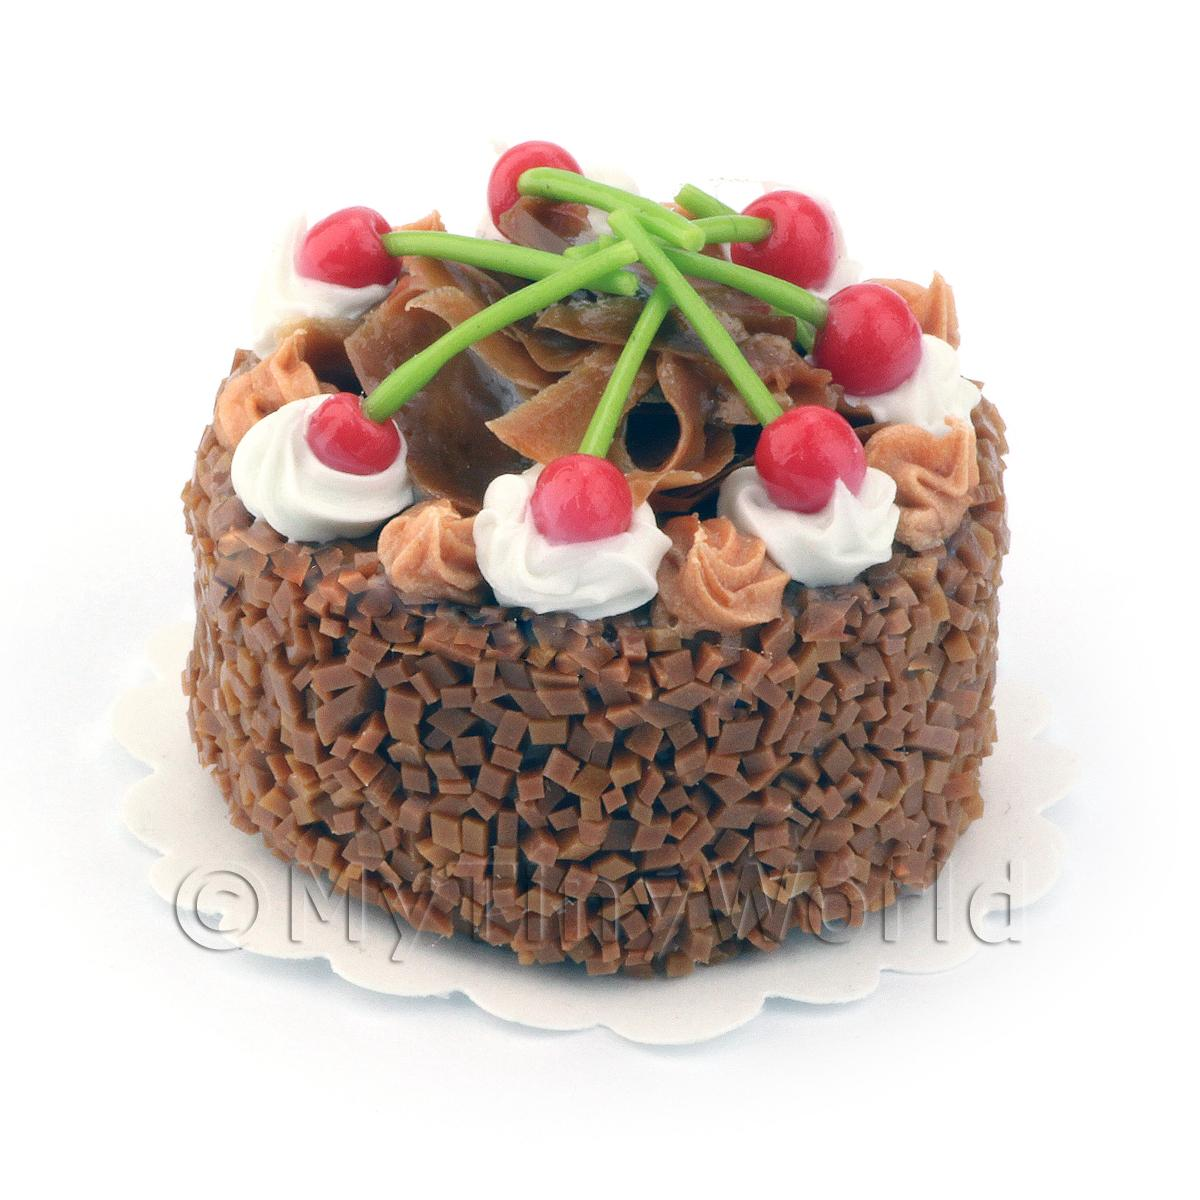 Dolls House Miniature Cherry Fudge Cake